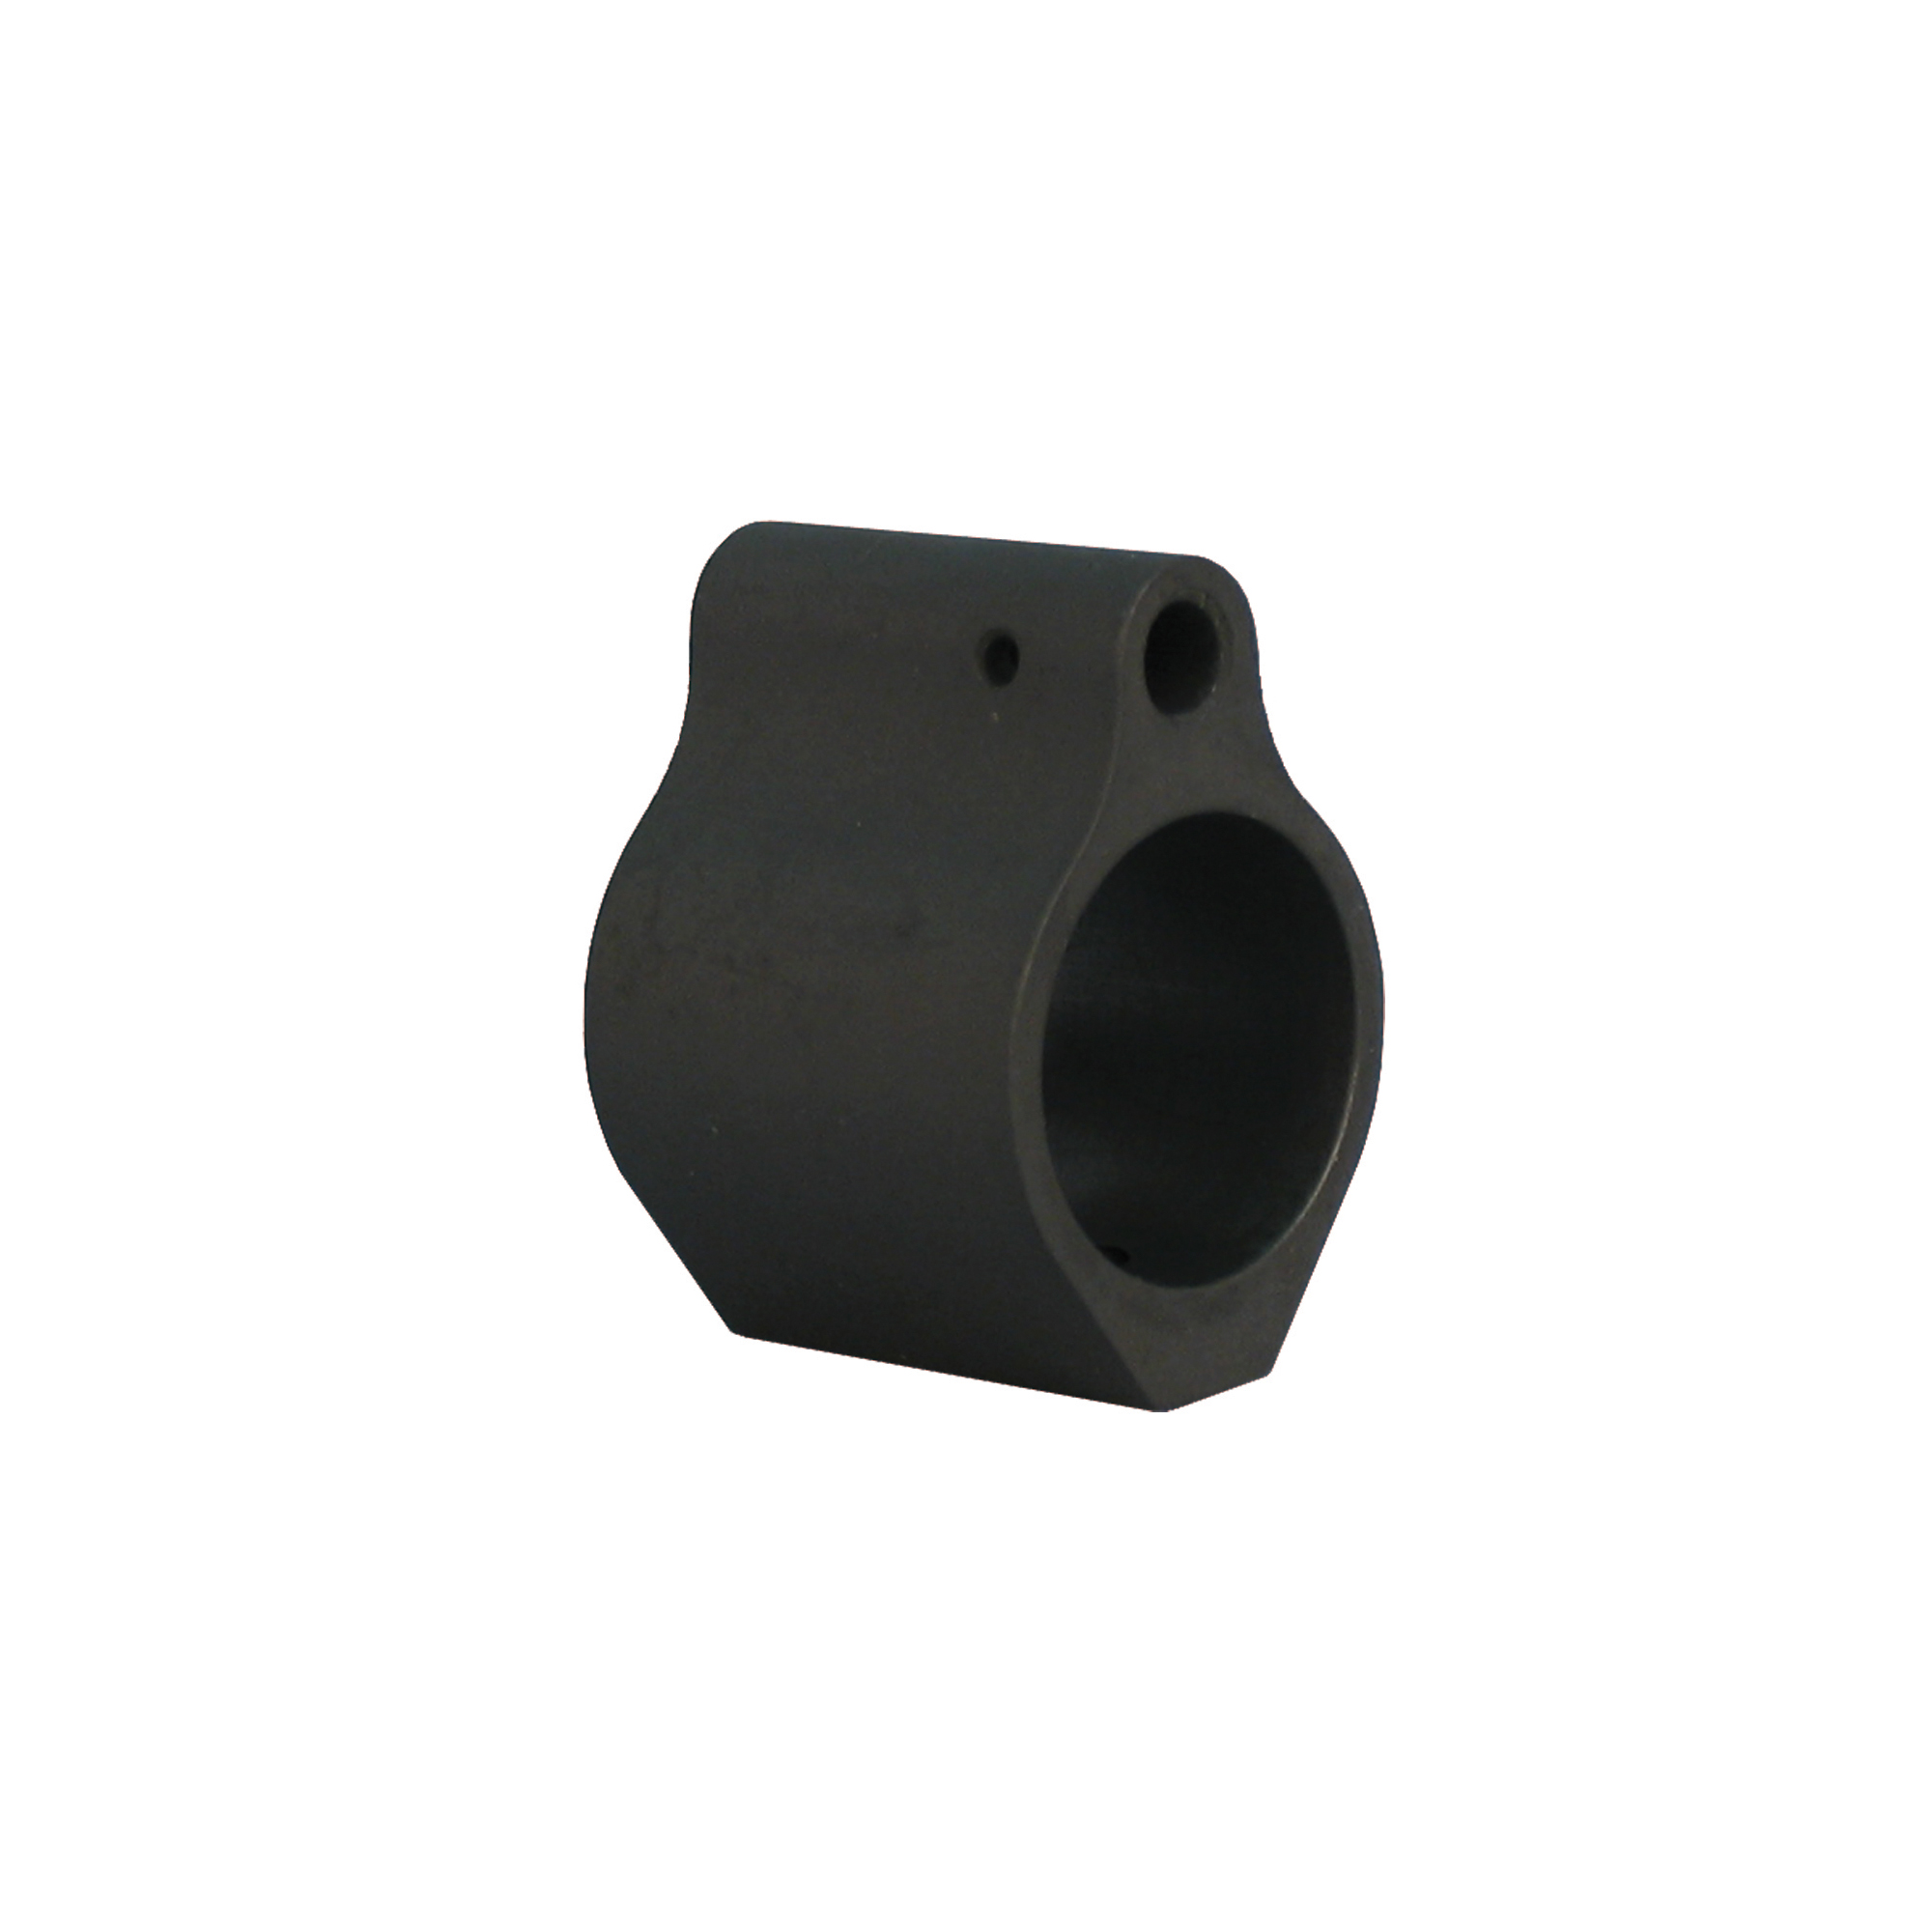 """This gas block replaces your existing front sight to provide a simple"""" low profile design that can be used to mount a rifle length forearm to a carbine length barrel. It is mounted by the use of two set screws."""